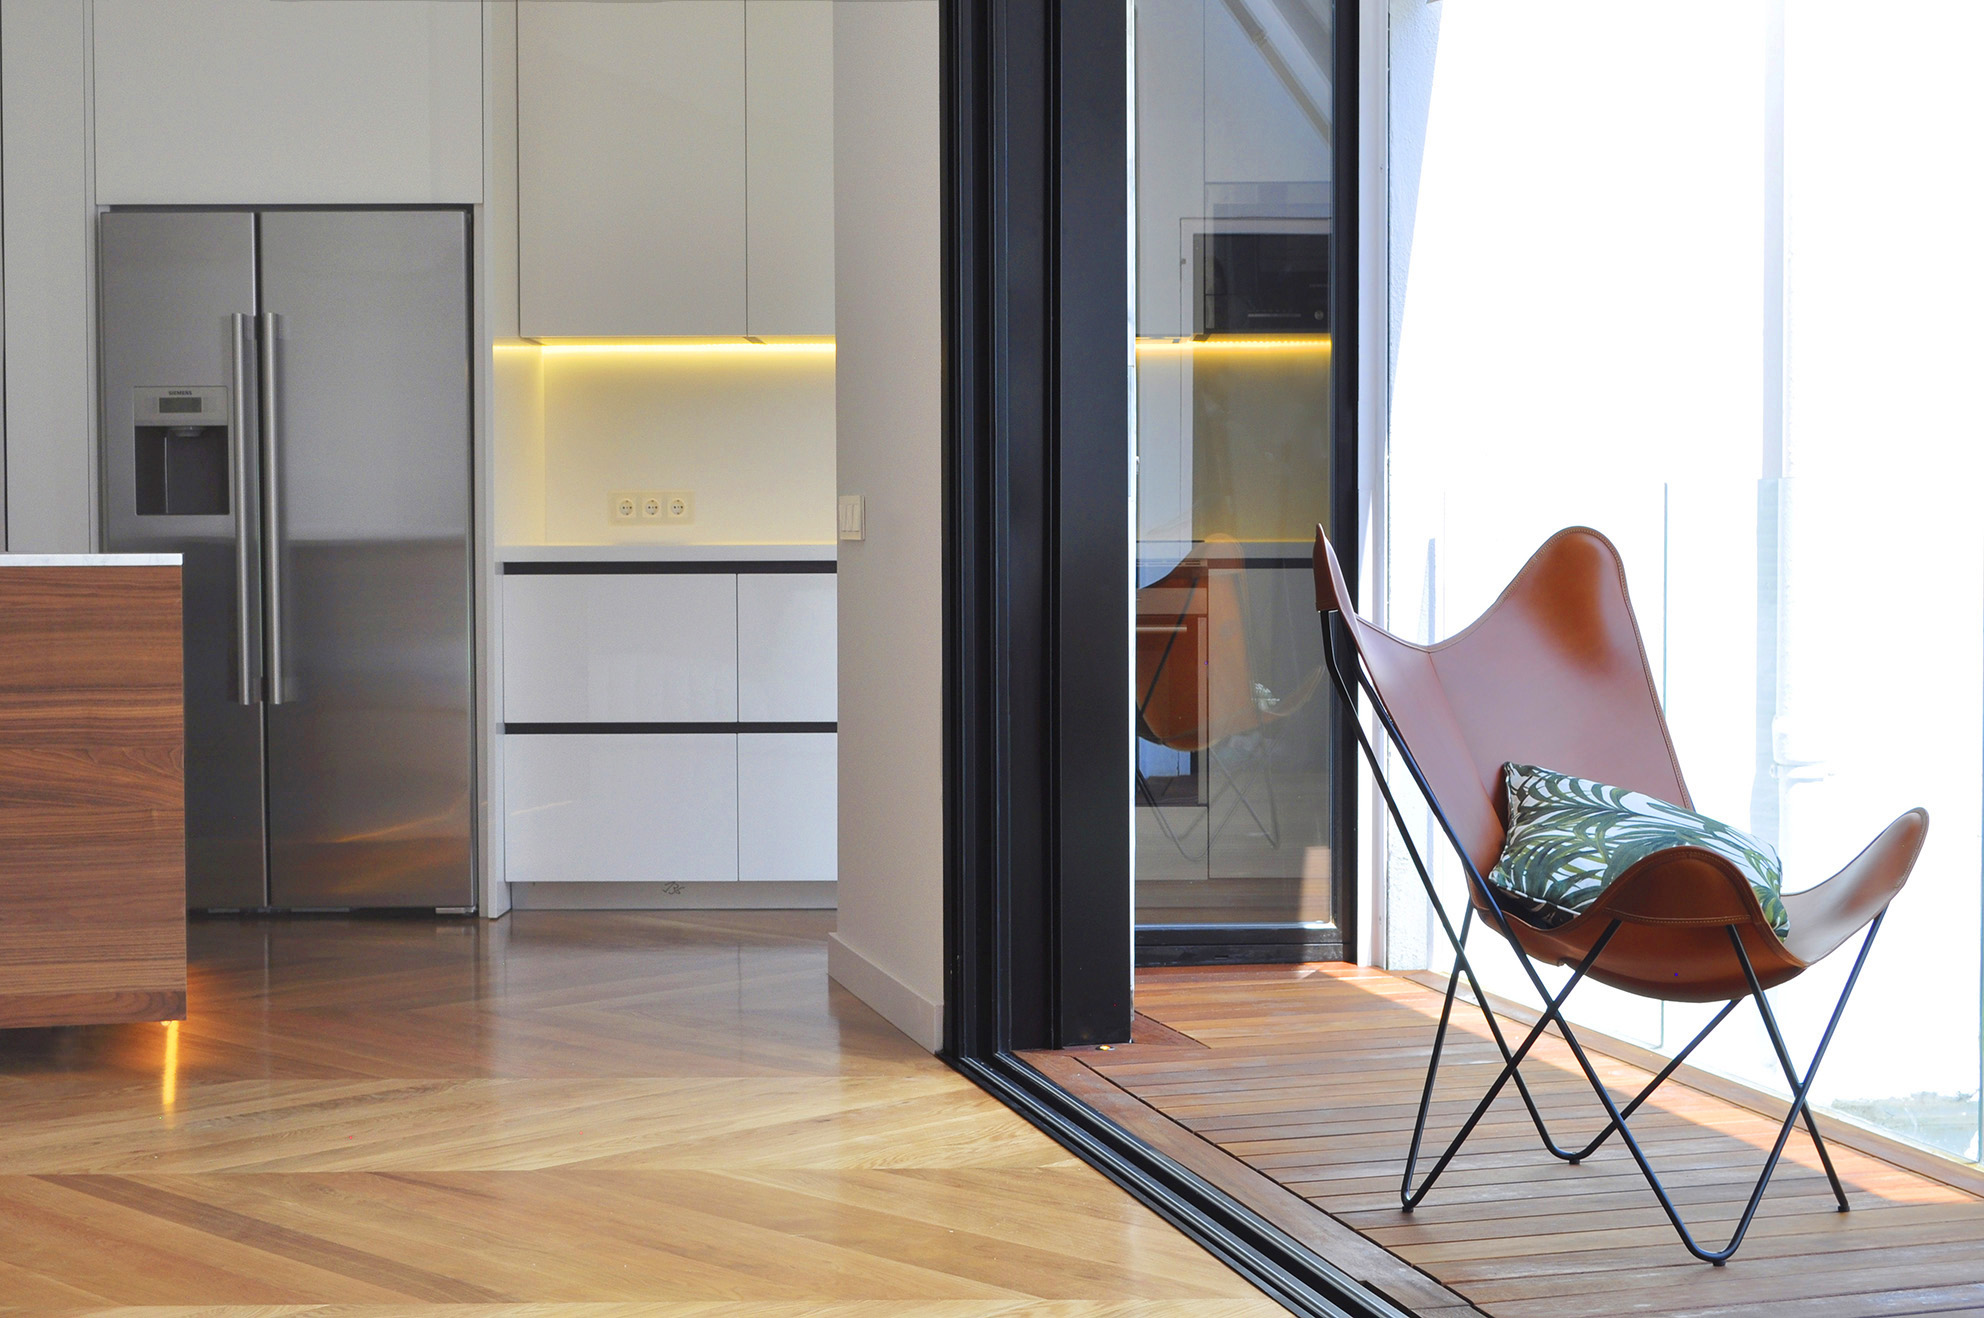 rardo-architects-in-barcelona-and-sitges-ii